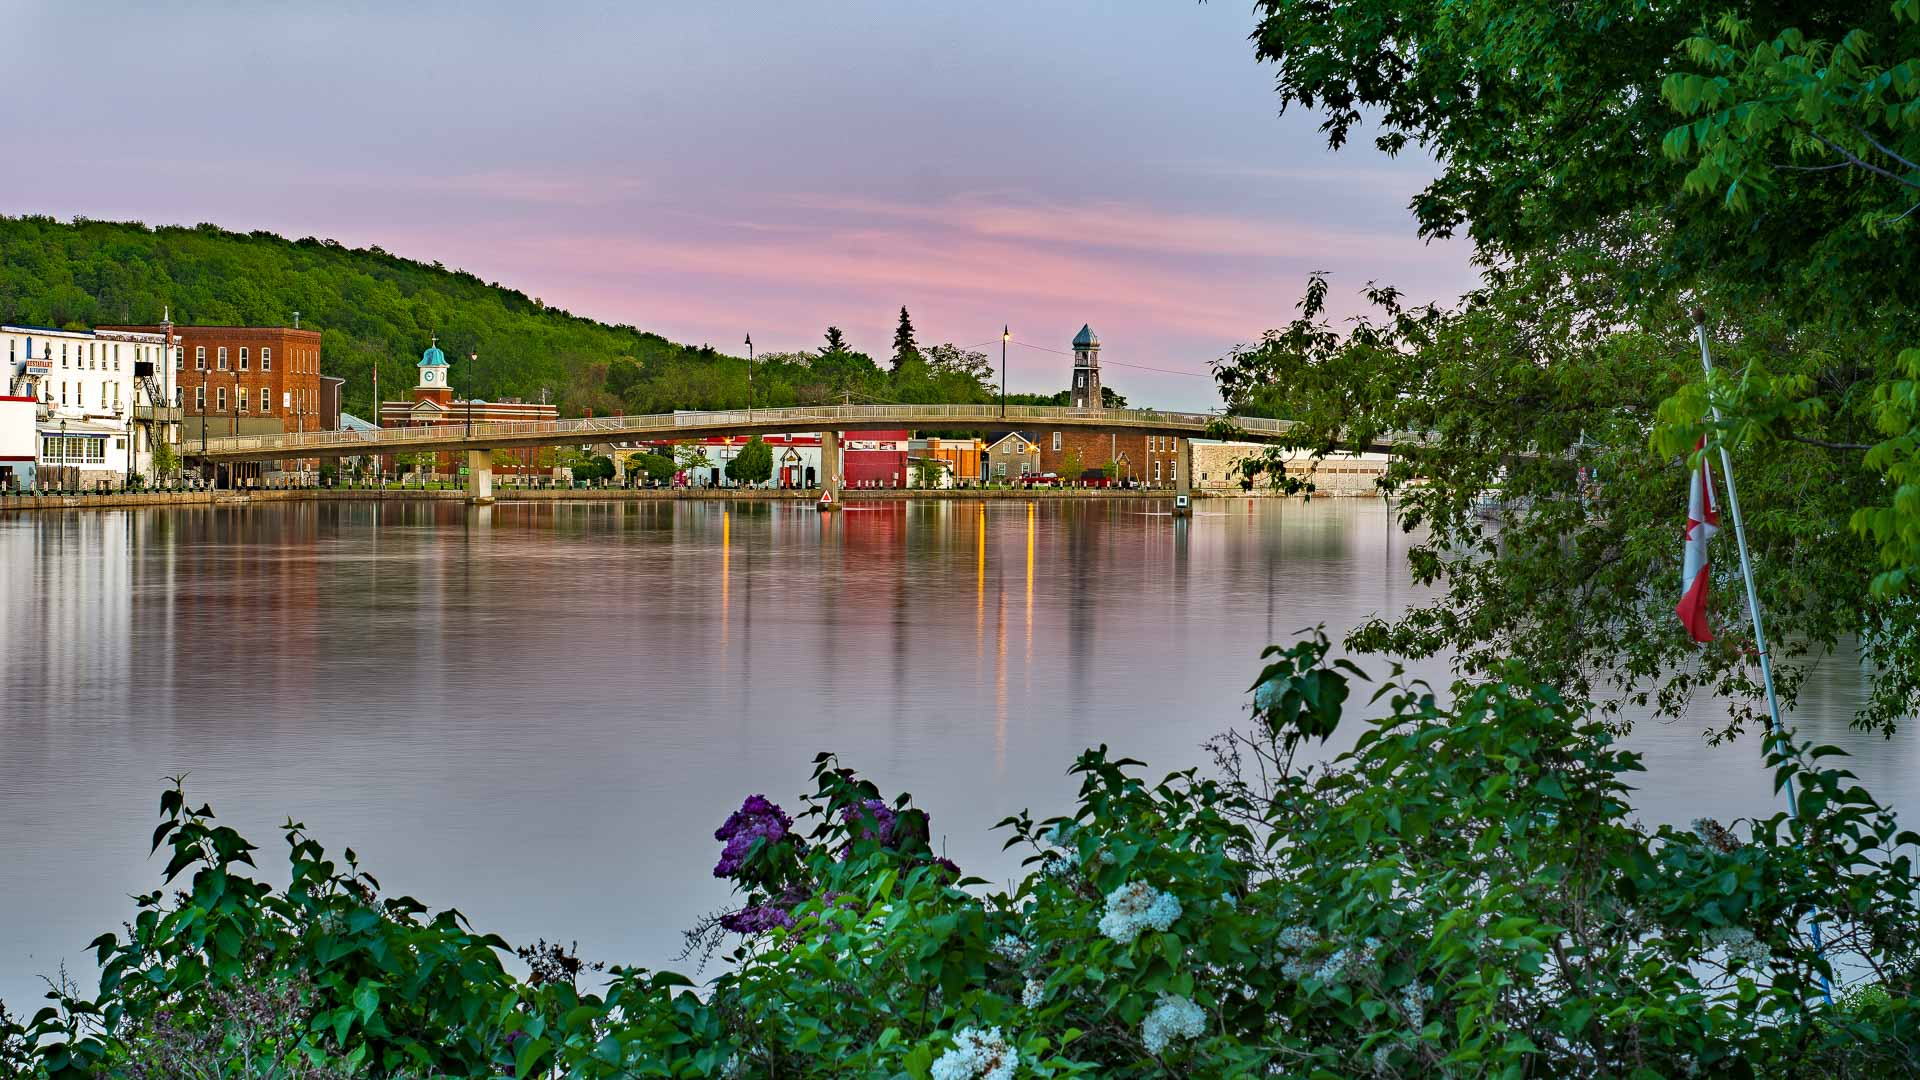 Campbellford at Twilight